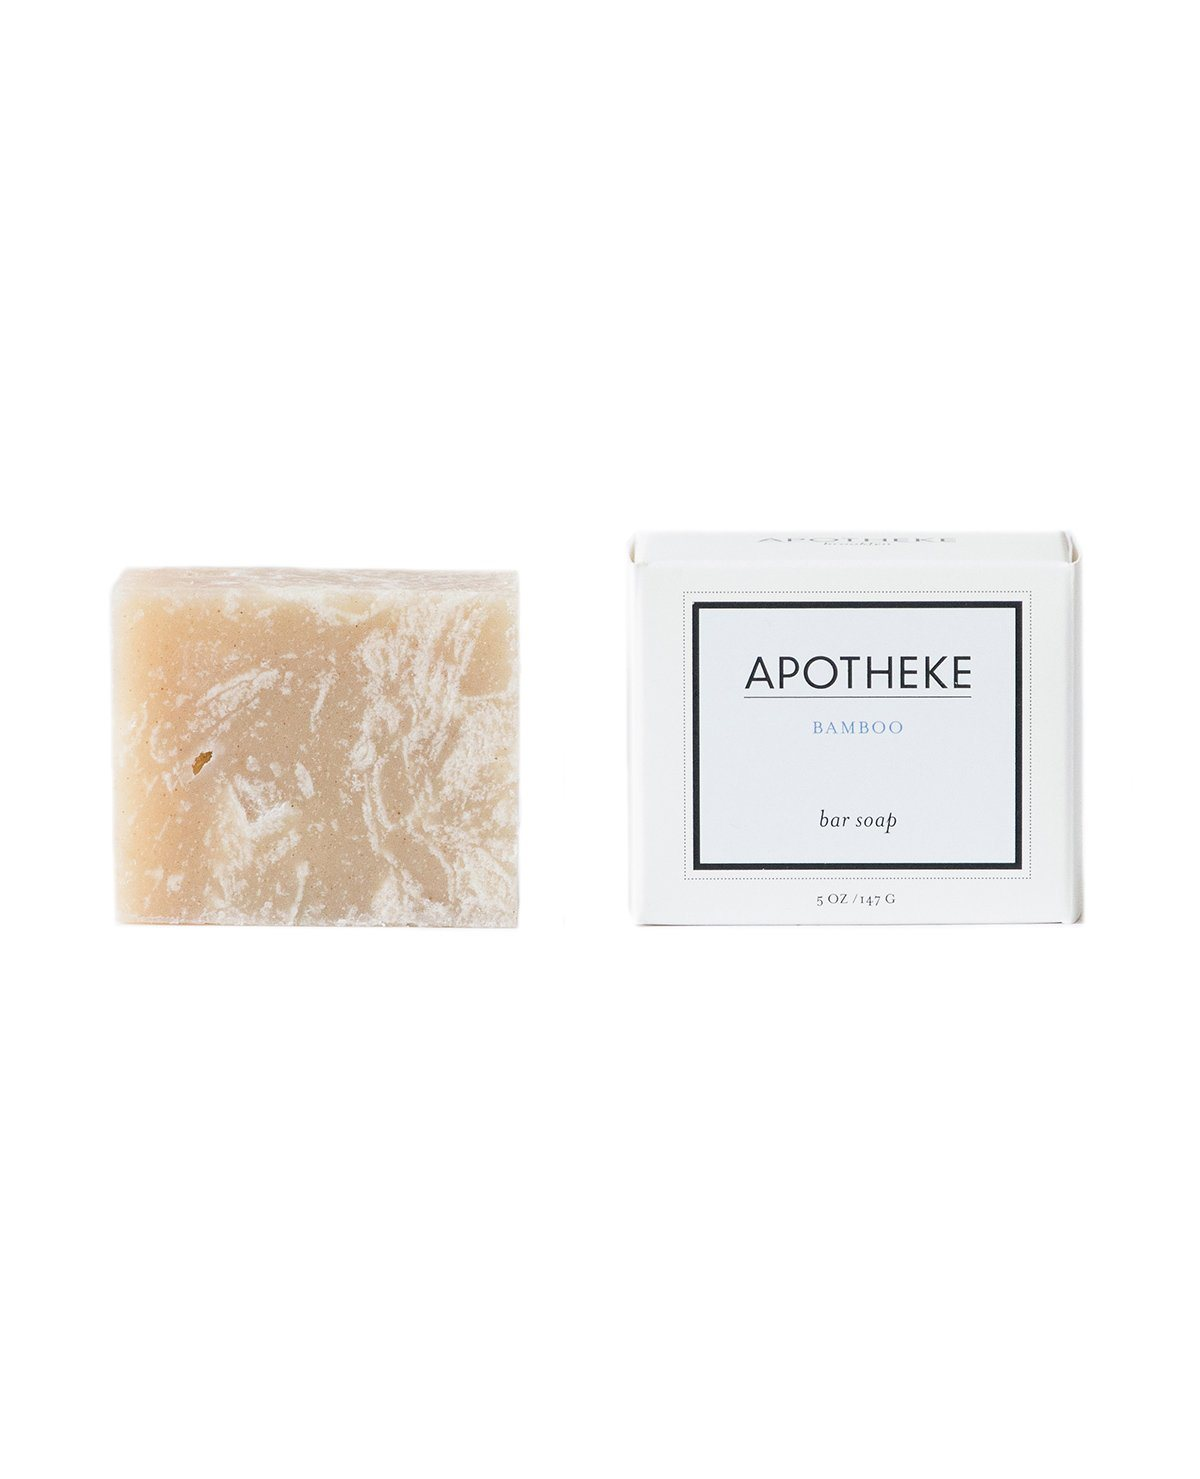 Apotheke%20Bamboo%20Bar%20Soap